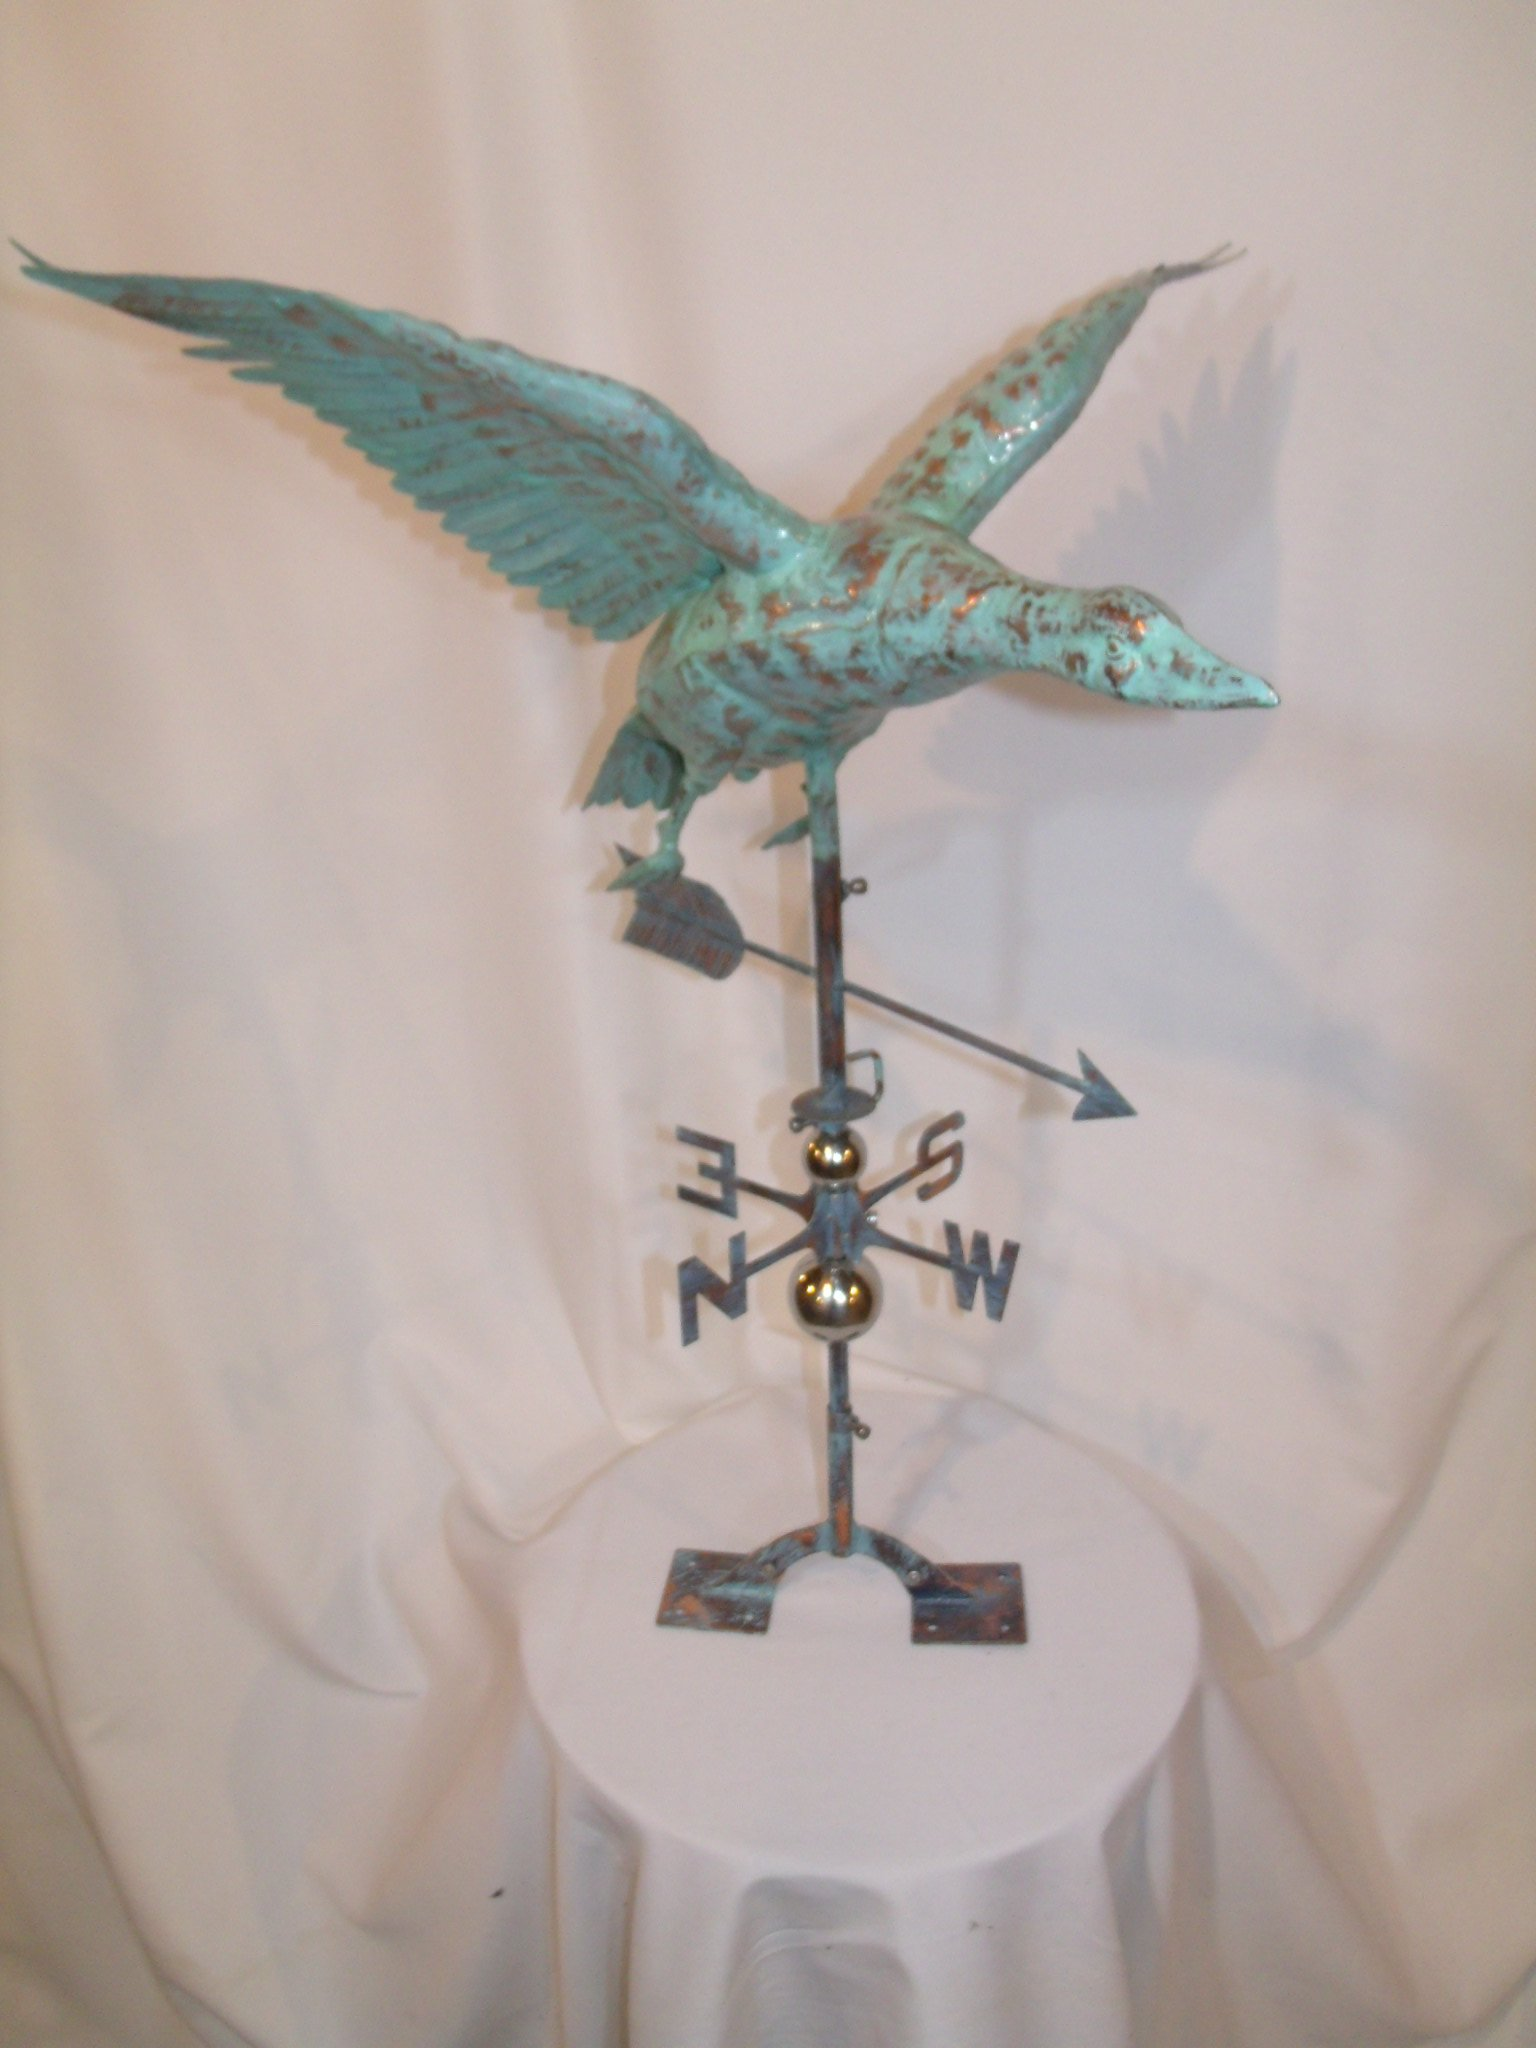 LARGE Handcrafted 3D 3- Dimensional Flying Goose Weathervane Copper Patina Finish